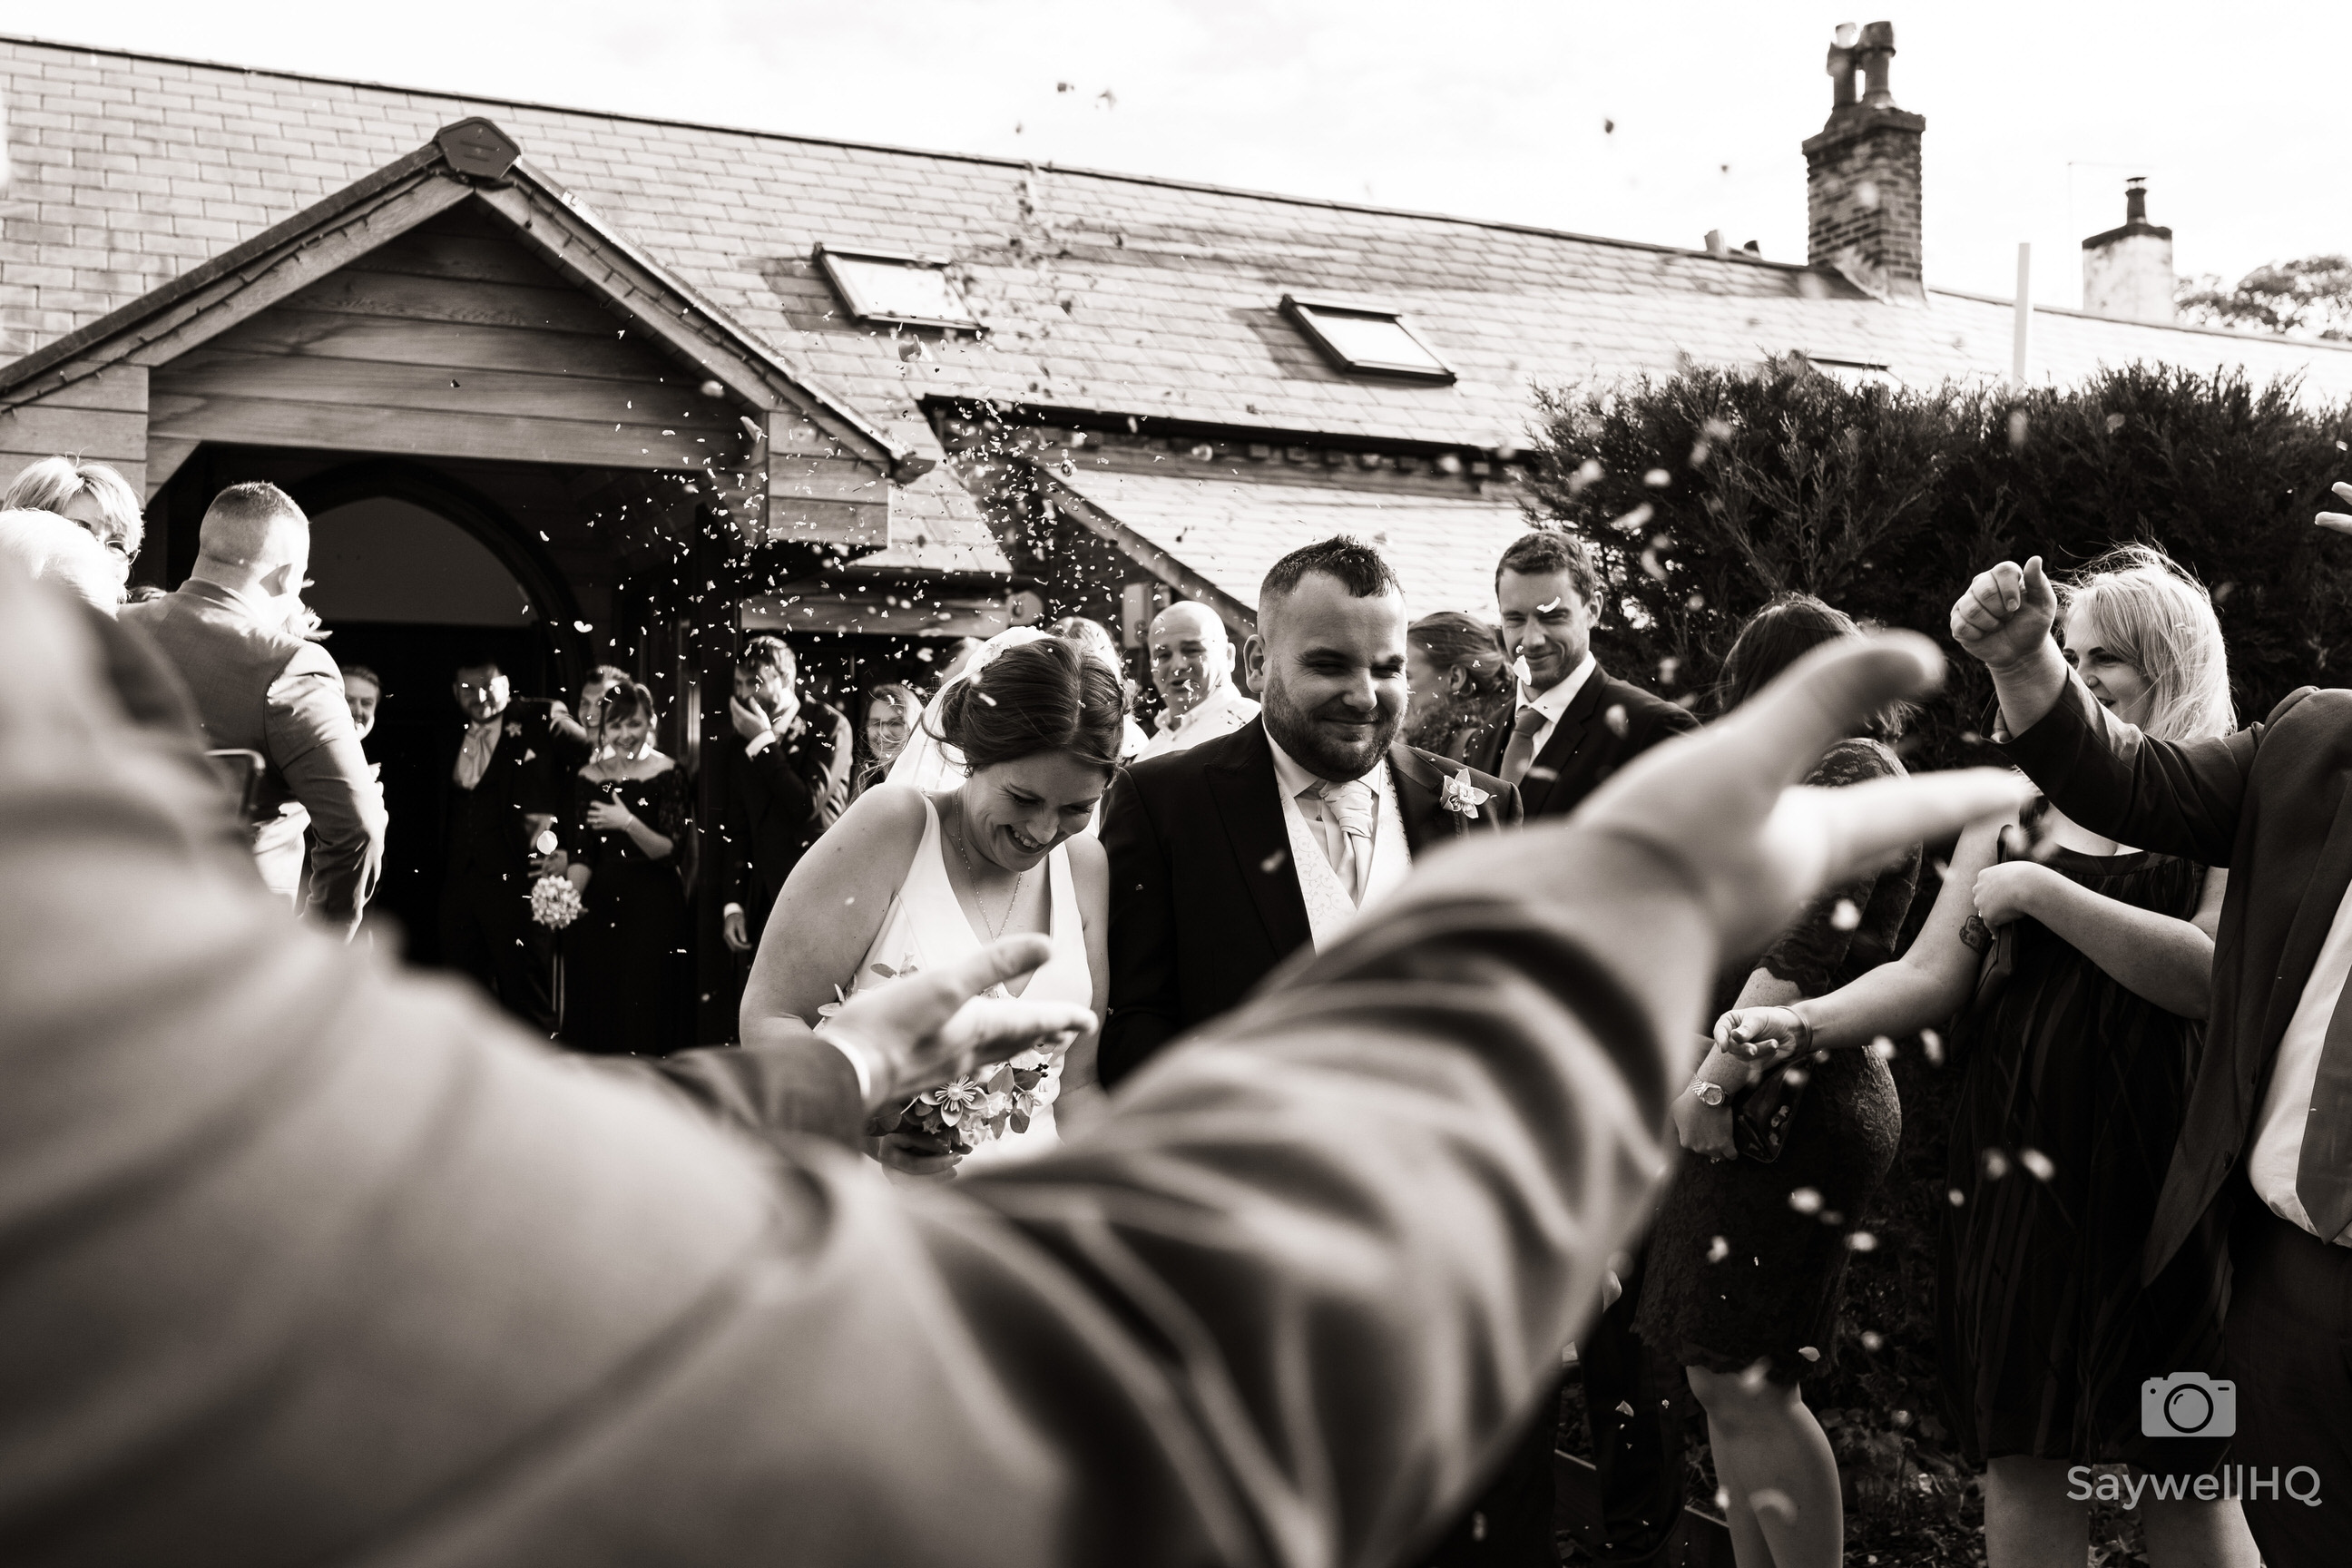 Goosedale wedding photography - bride and Groom get covered in confetti after the wedding ceremony